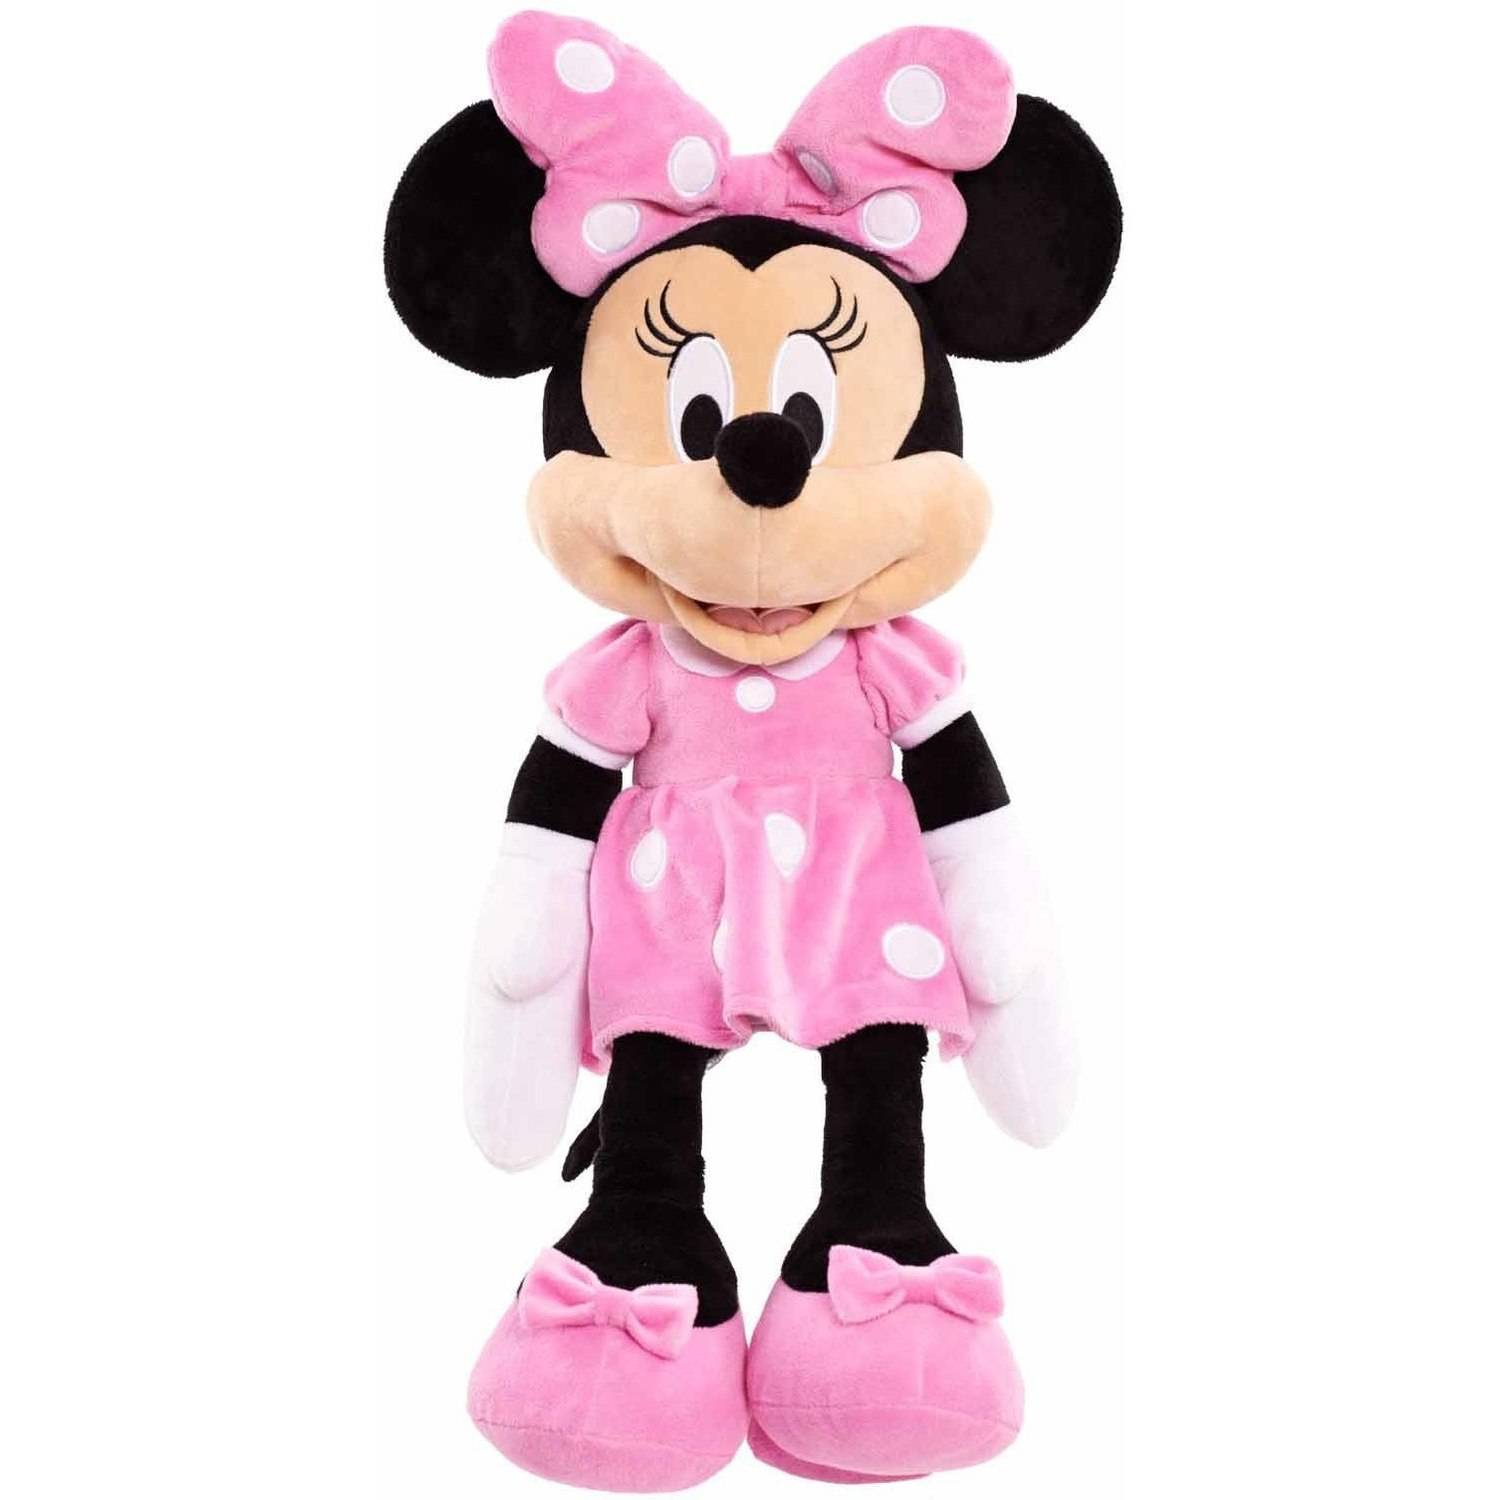 Disney Classic Large Plush, Minnie in Pink